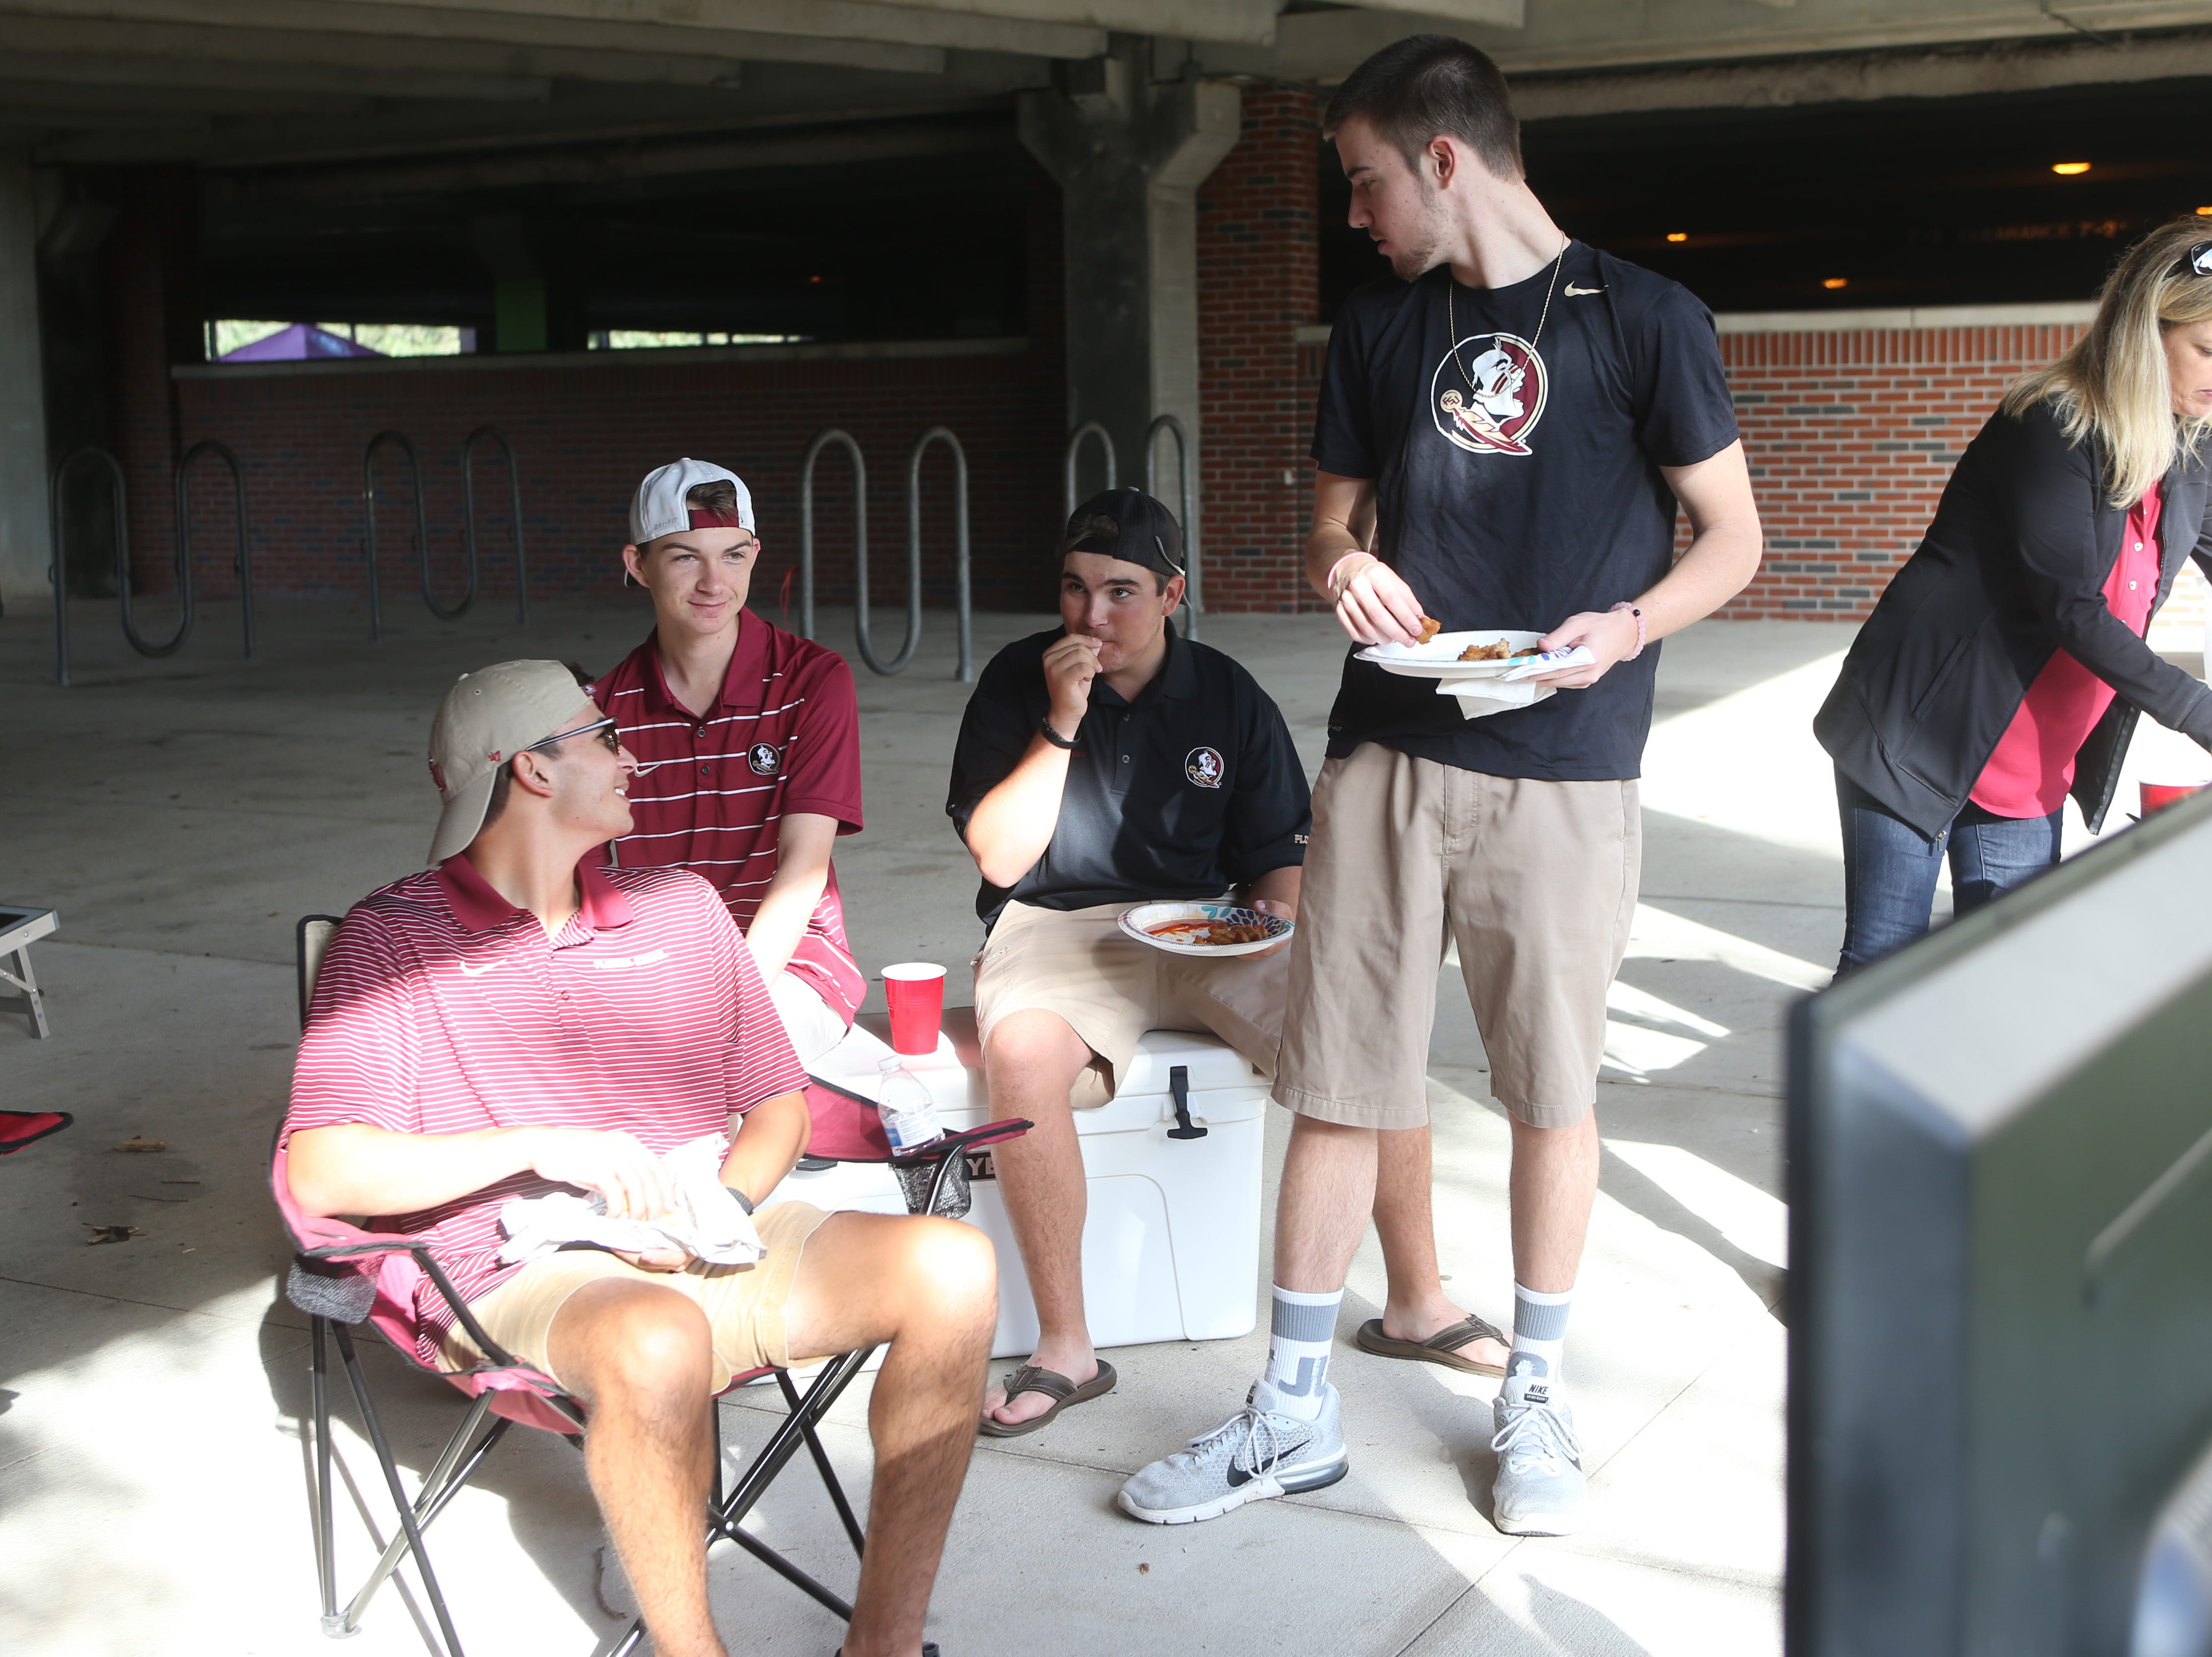 Seminole fans setup a television outside a parking garage as they tailgate before the big rivalry game between the Florida State Seminoles and the Florida Gators, Saturday, Nov. 24, 2018.